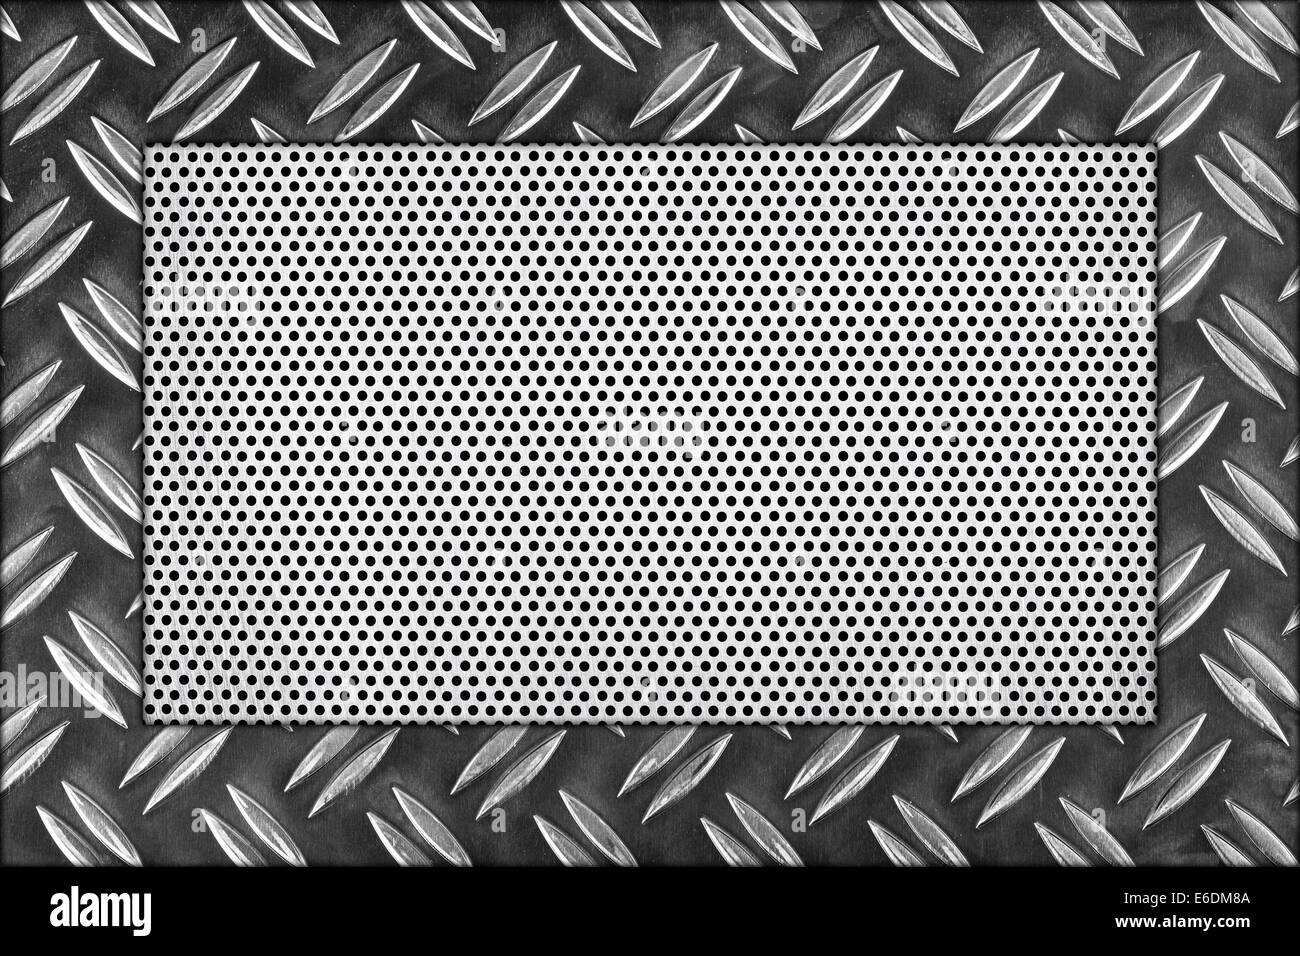 Stainless Steel Diamond Plate Background Stock Photos & Stainless ...